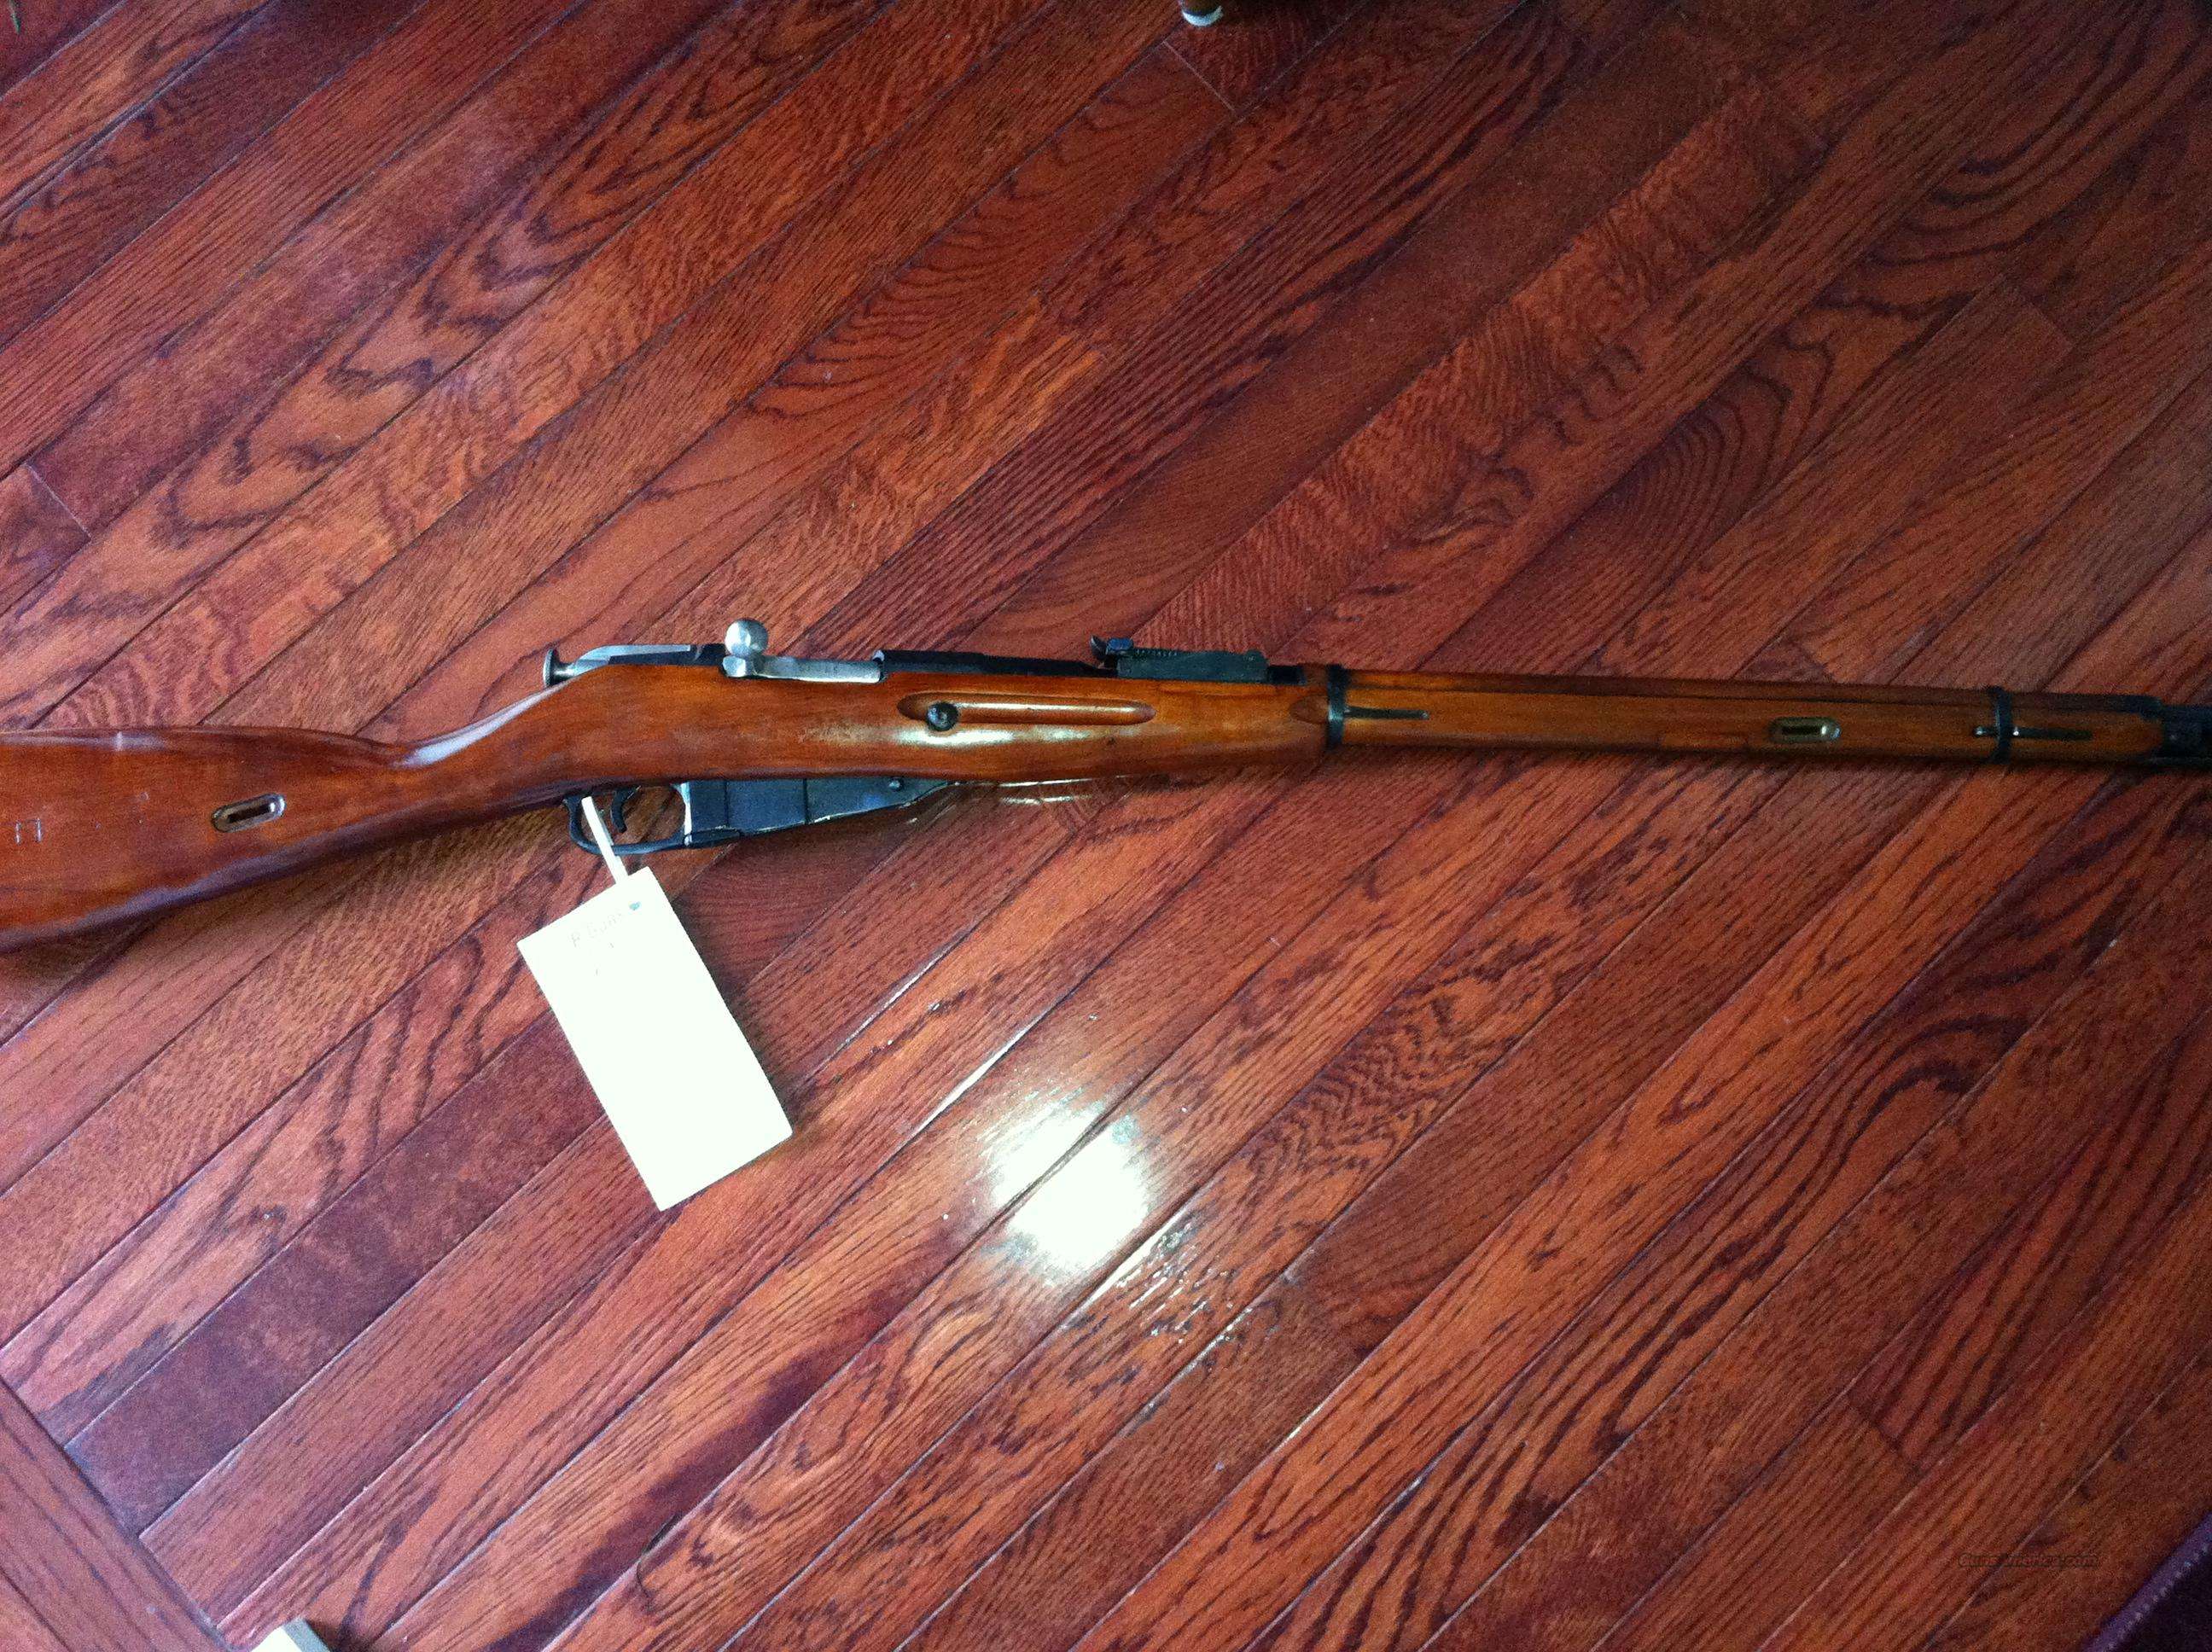 **WORLD WAR II ISSUE 1942 **Russian 1891/30 7.62x54R  Mosin Nagant Rifle  Guns > Rifles > Mosin-Nagant Rifles/Carbines